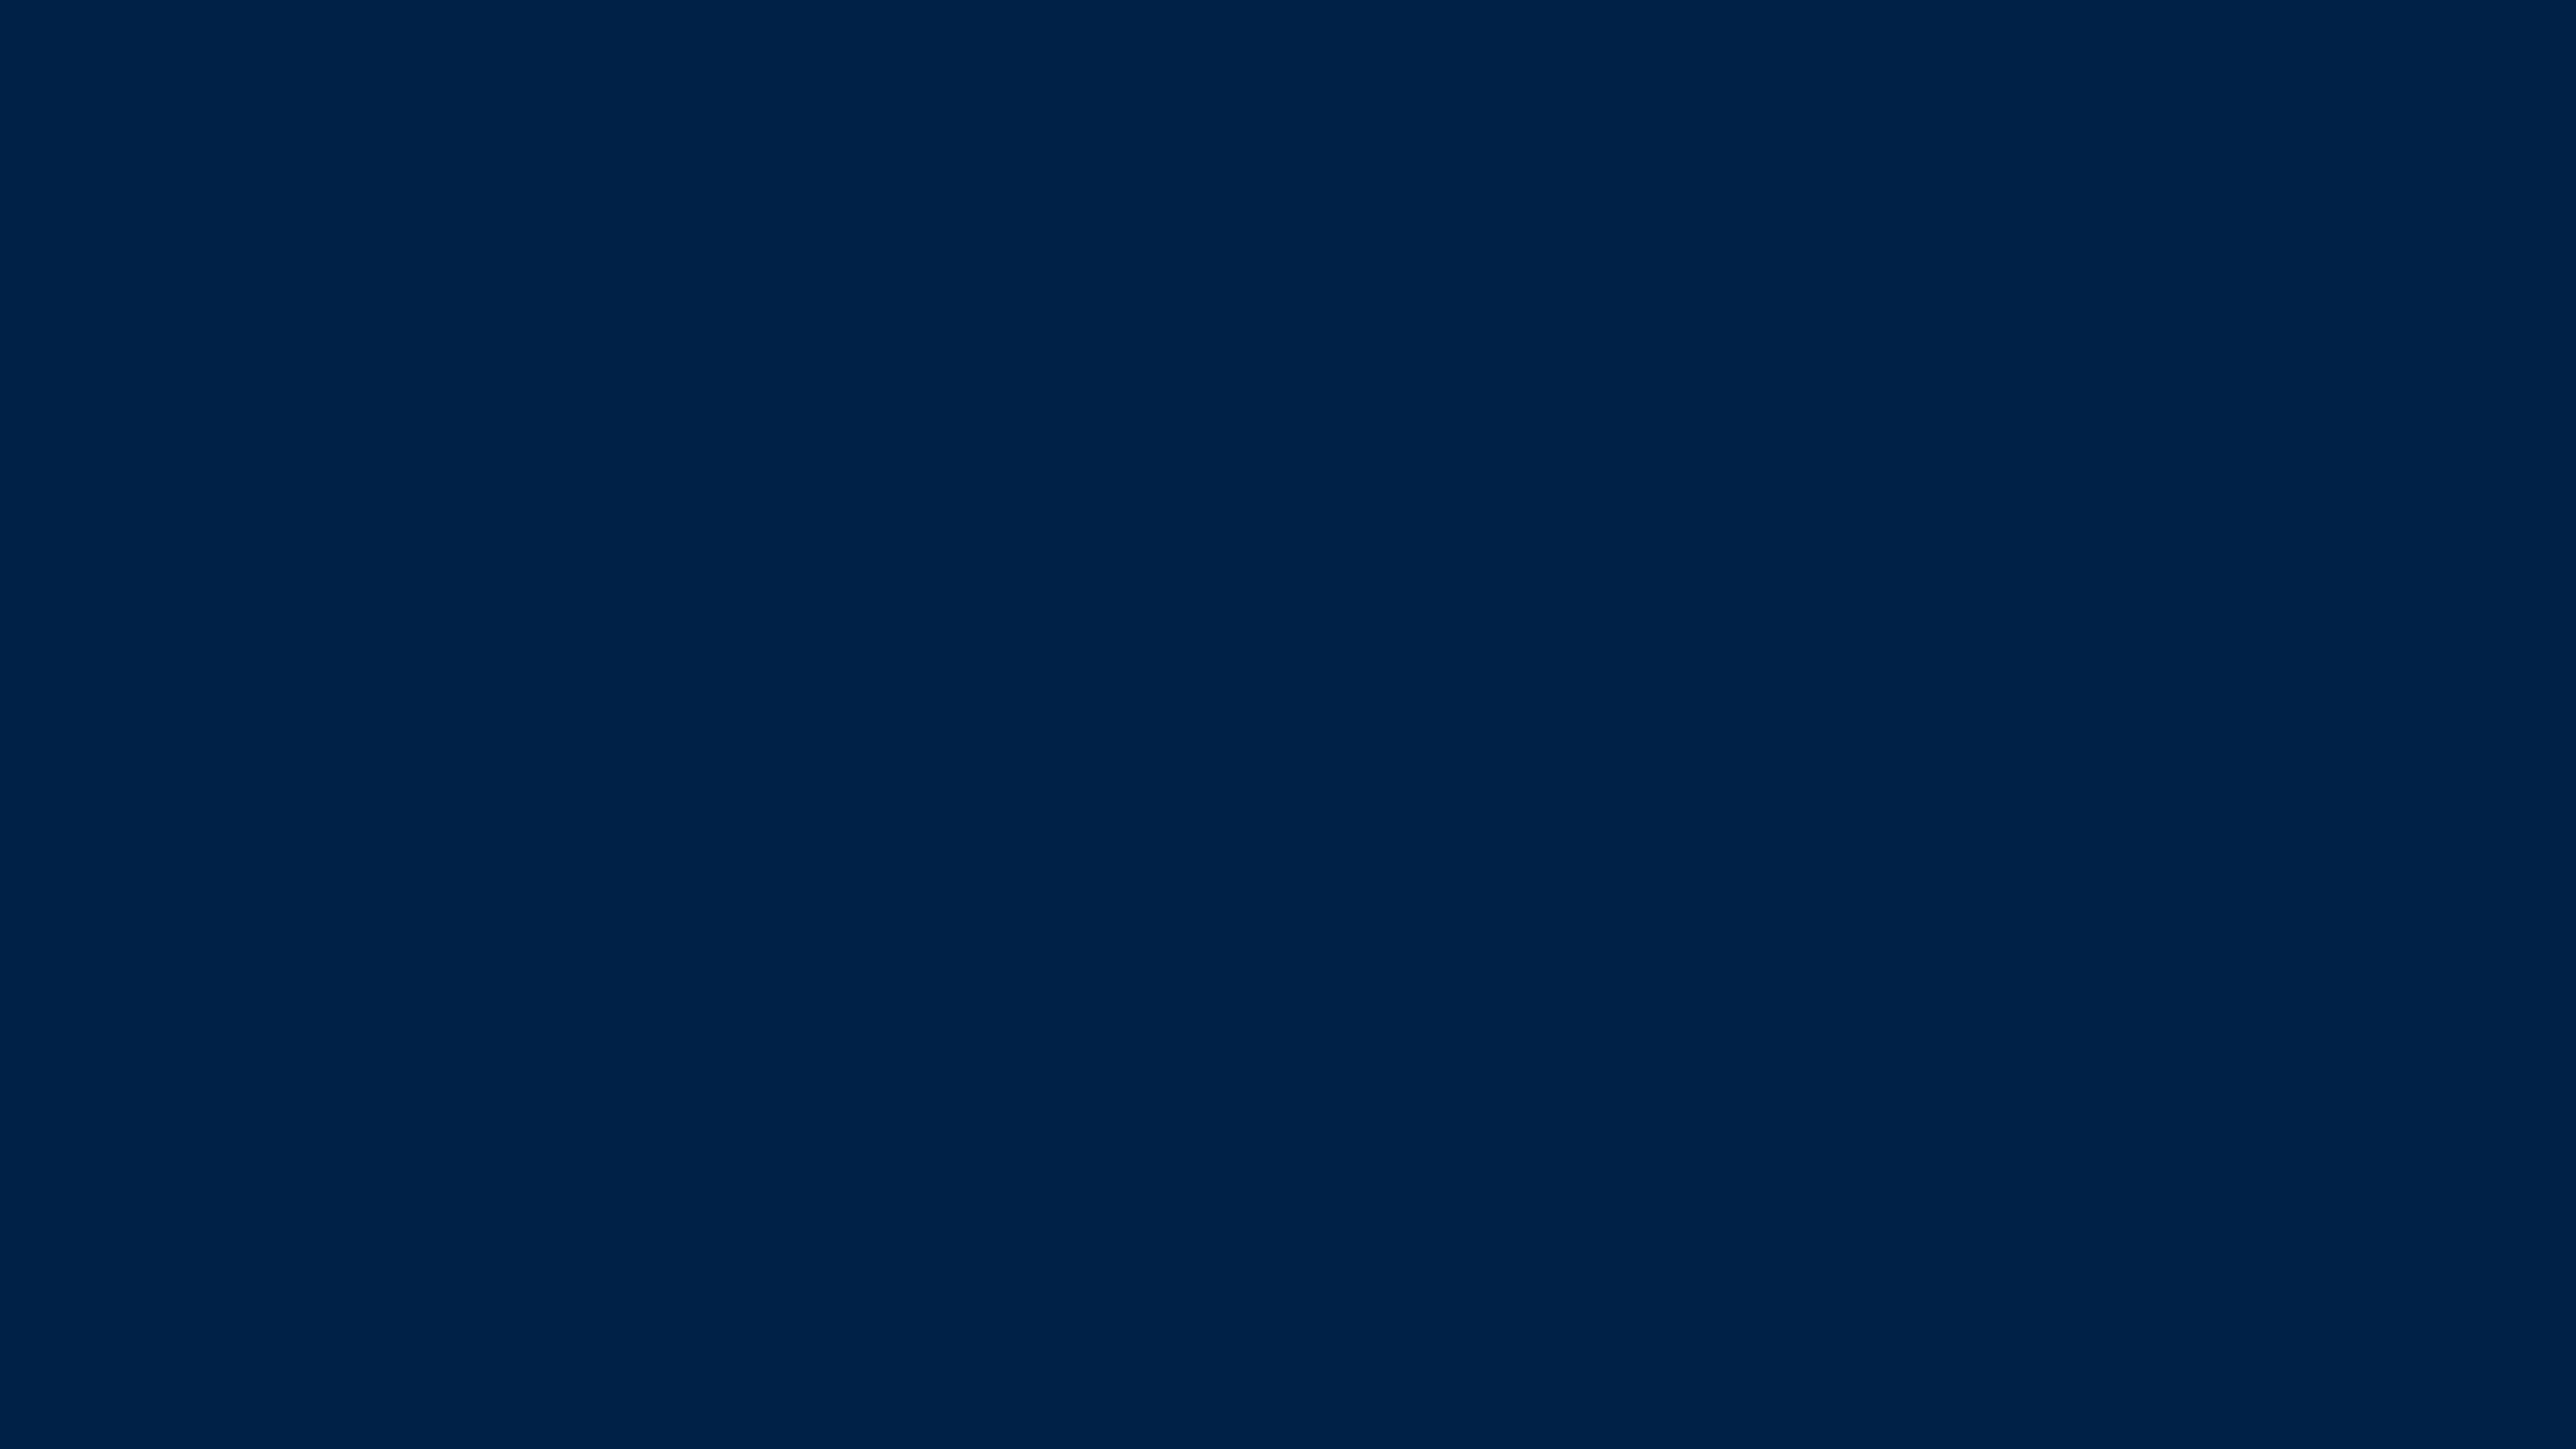 7680x4320 Oxford Blue Solid Color Background